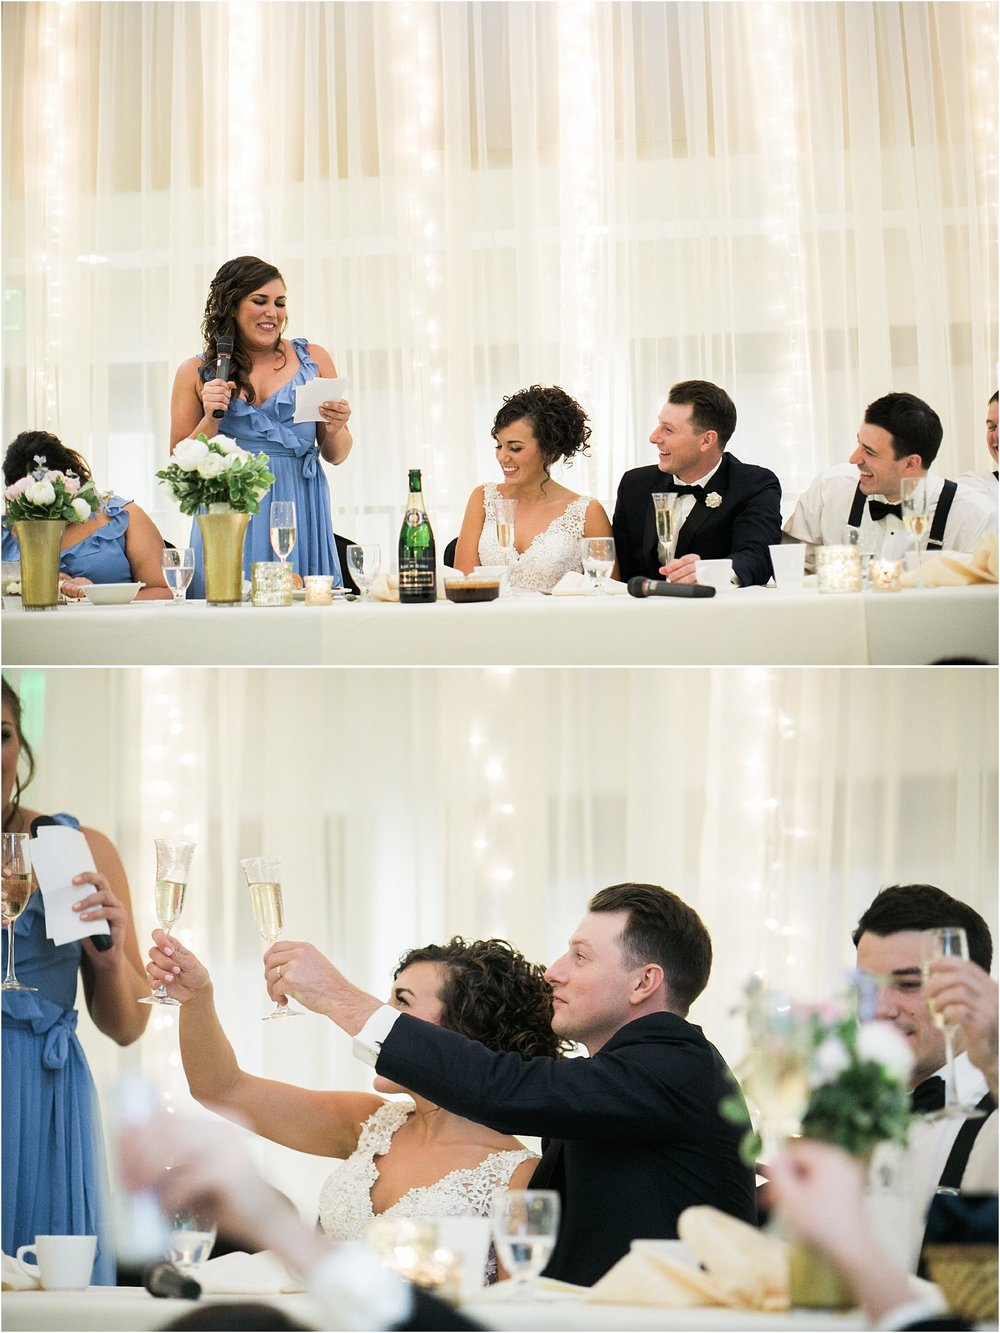 wedding party toasting bride and groom during maid of honor speech